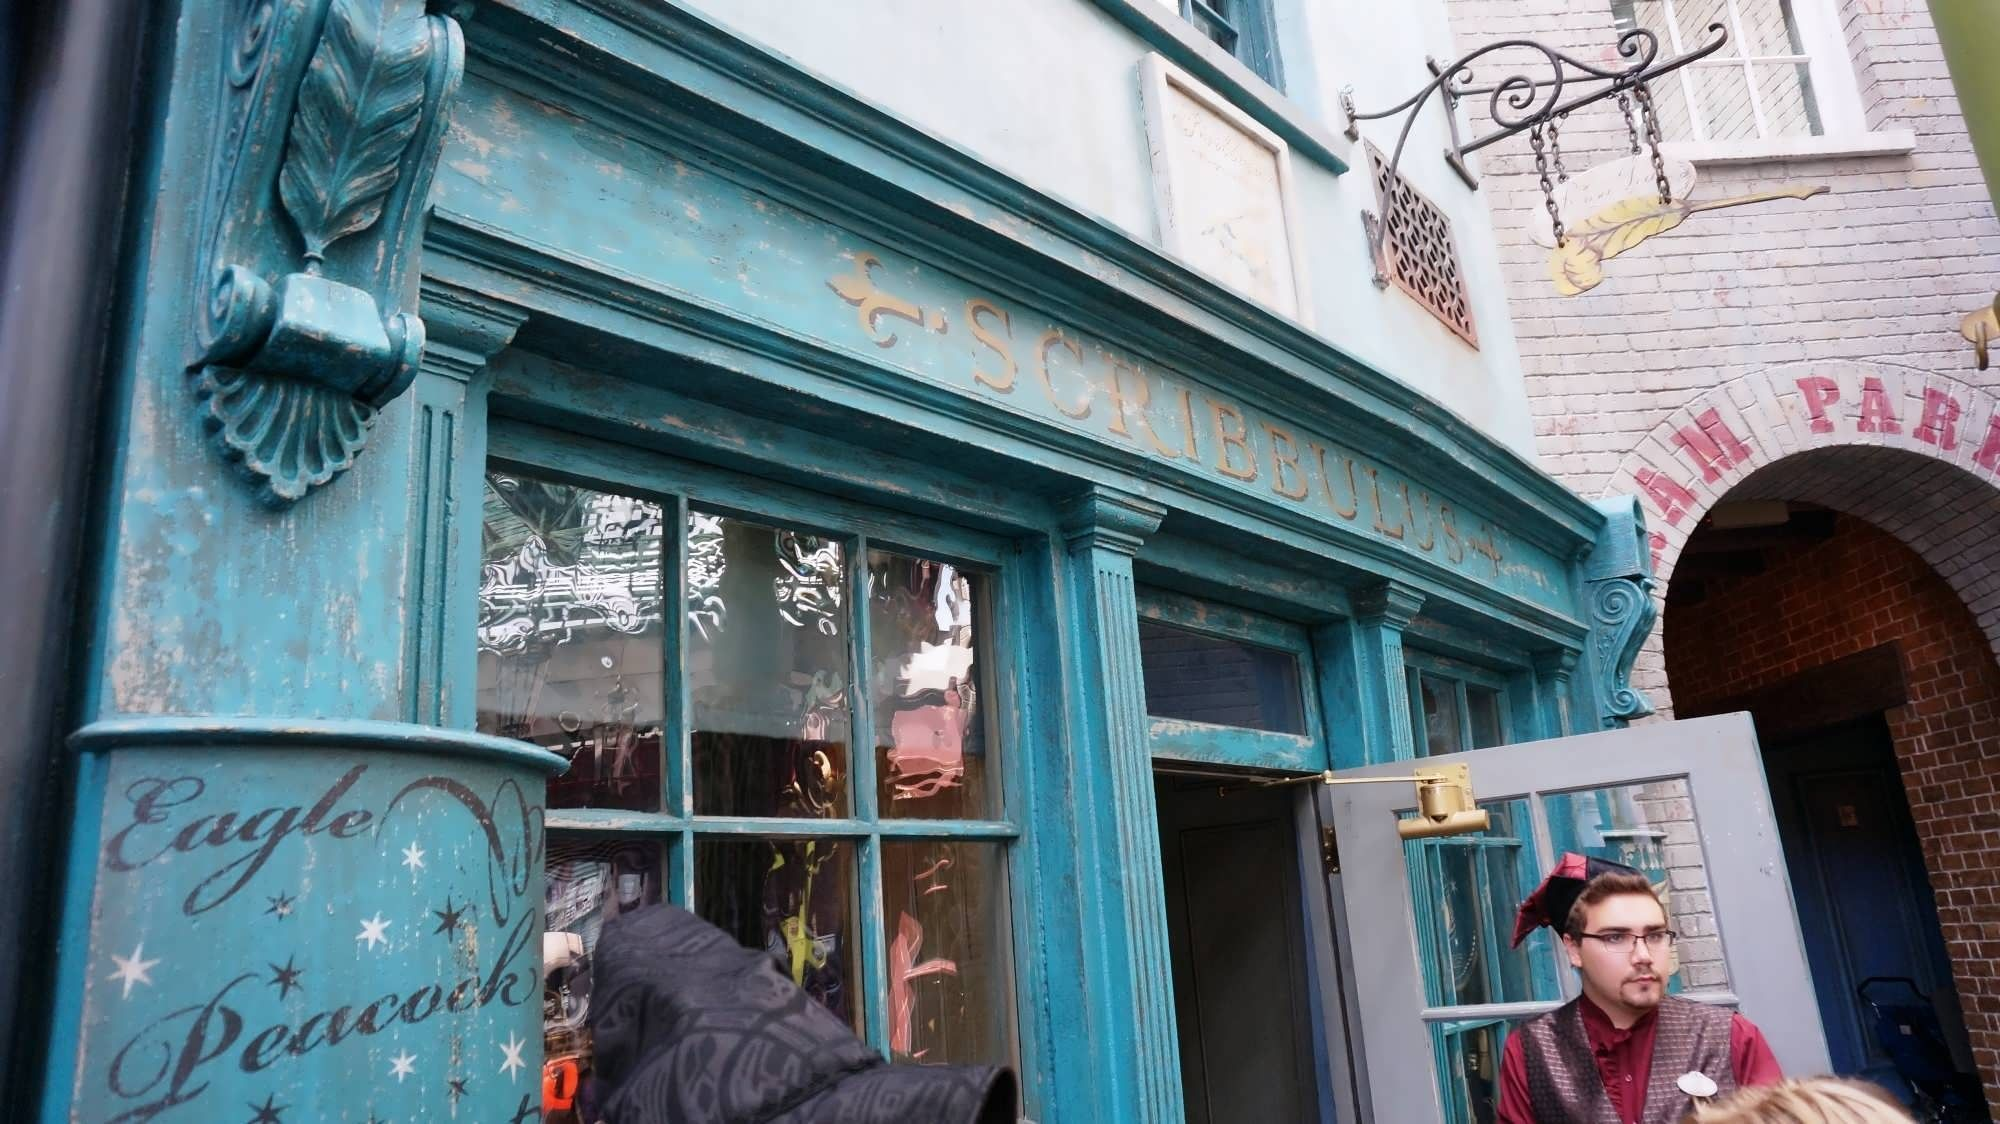 Shopping & merchandise at Wizarding World of Harry Potter